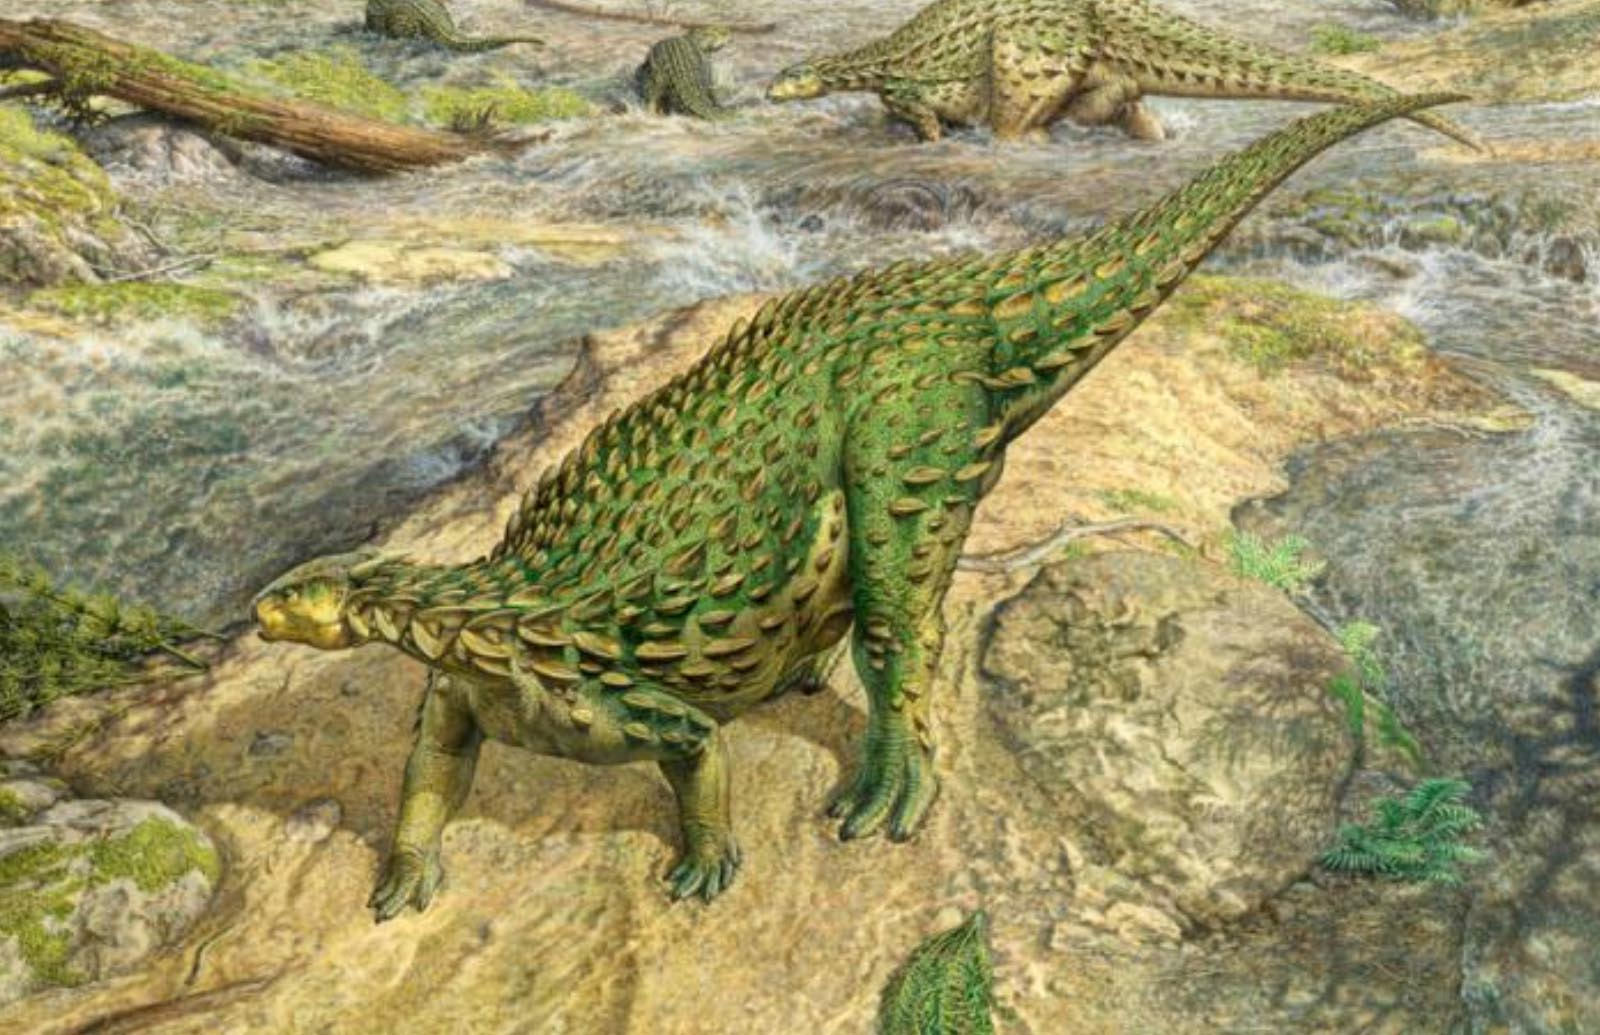 The only complete dinosaur skeleton ever discovered has finally been assembled